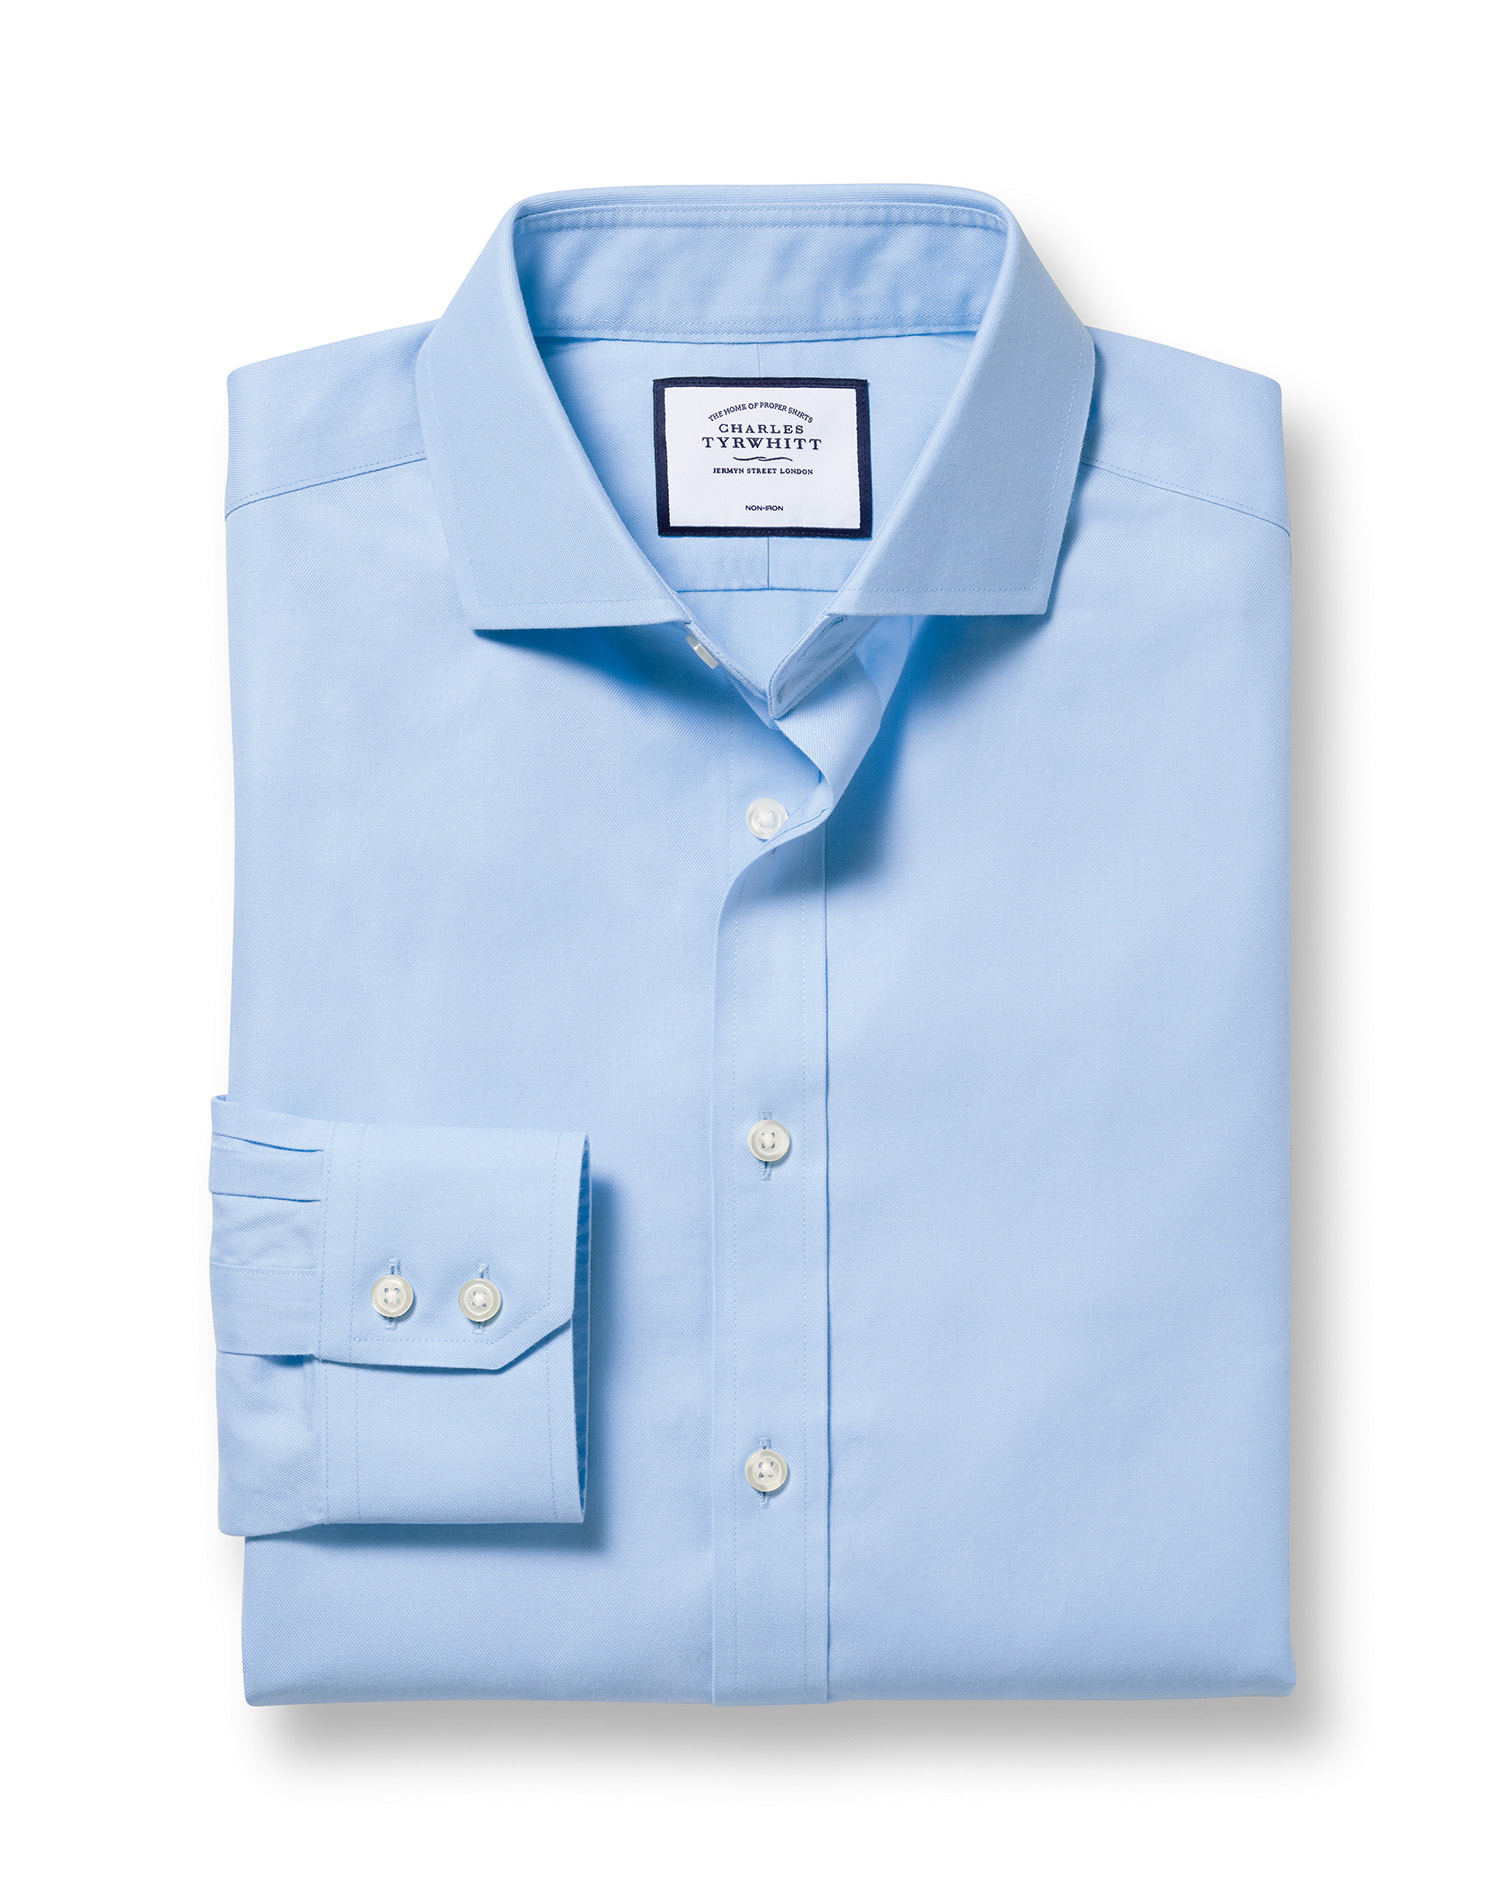 Classic Fit Cutaway Non-Iron Twill Sky Blue Cotton Formal Shirt Double Cuff Size 15.5/32 by Charles